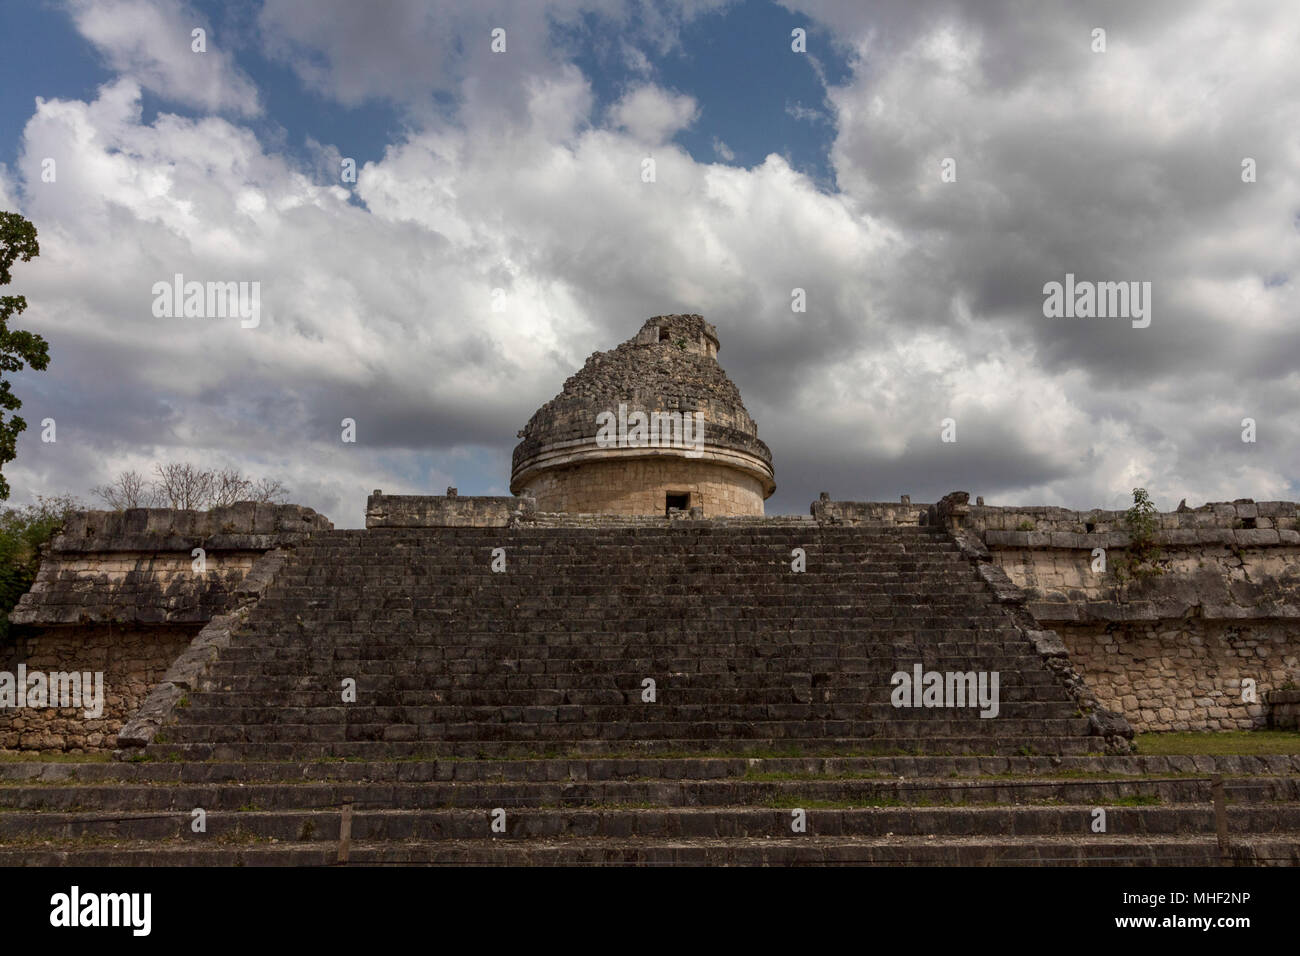 The Snail, Mayan observatory. Priests would decree the time of rituals, celebrations and planting from the dome of the circular building. Its Windows  - Stock Image